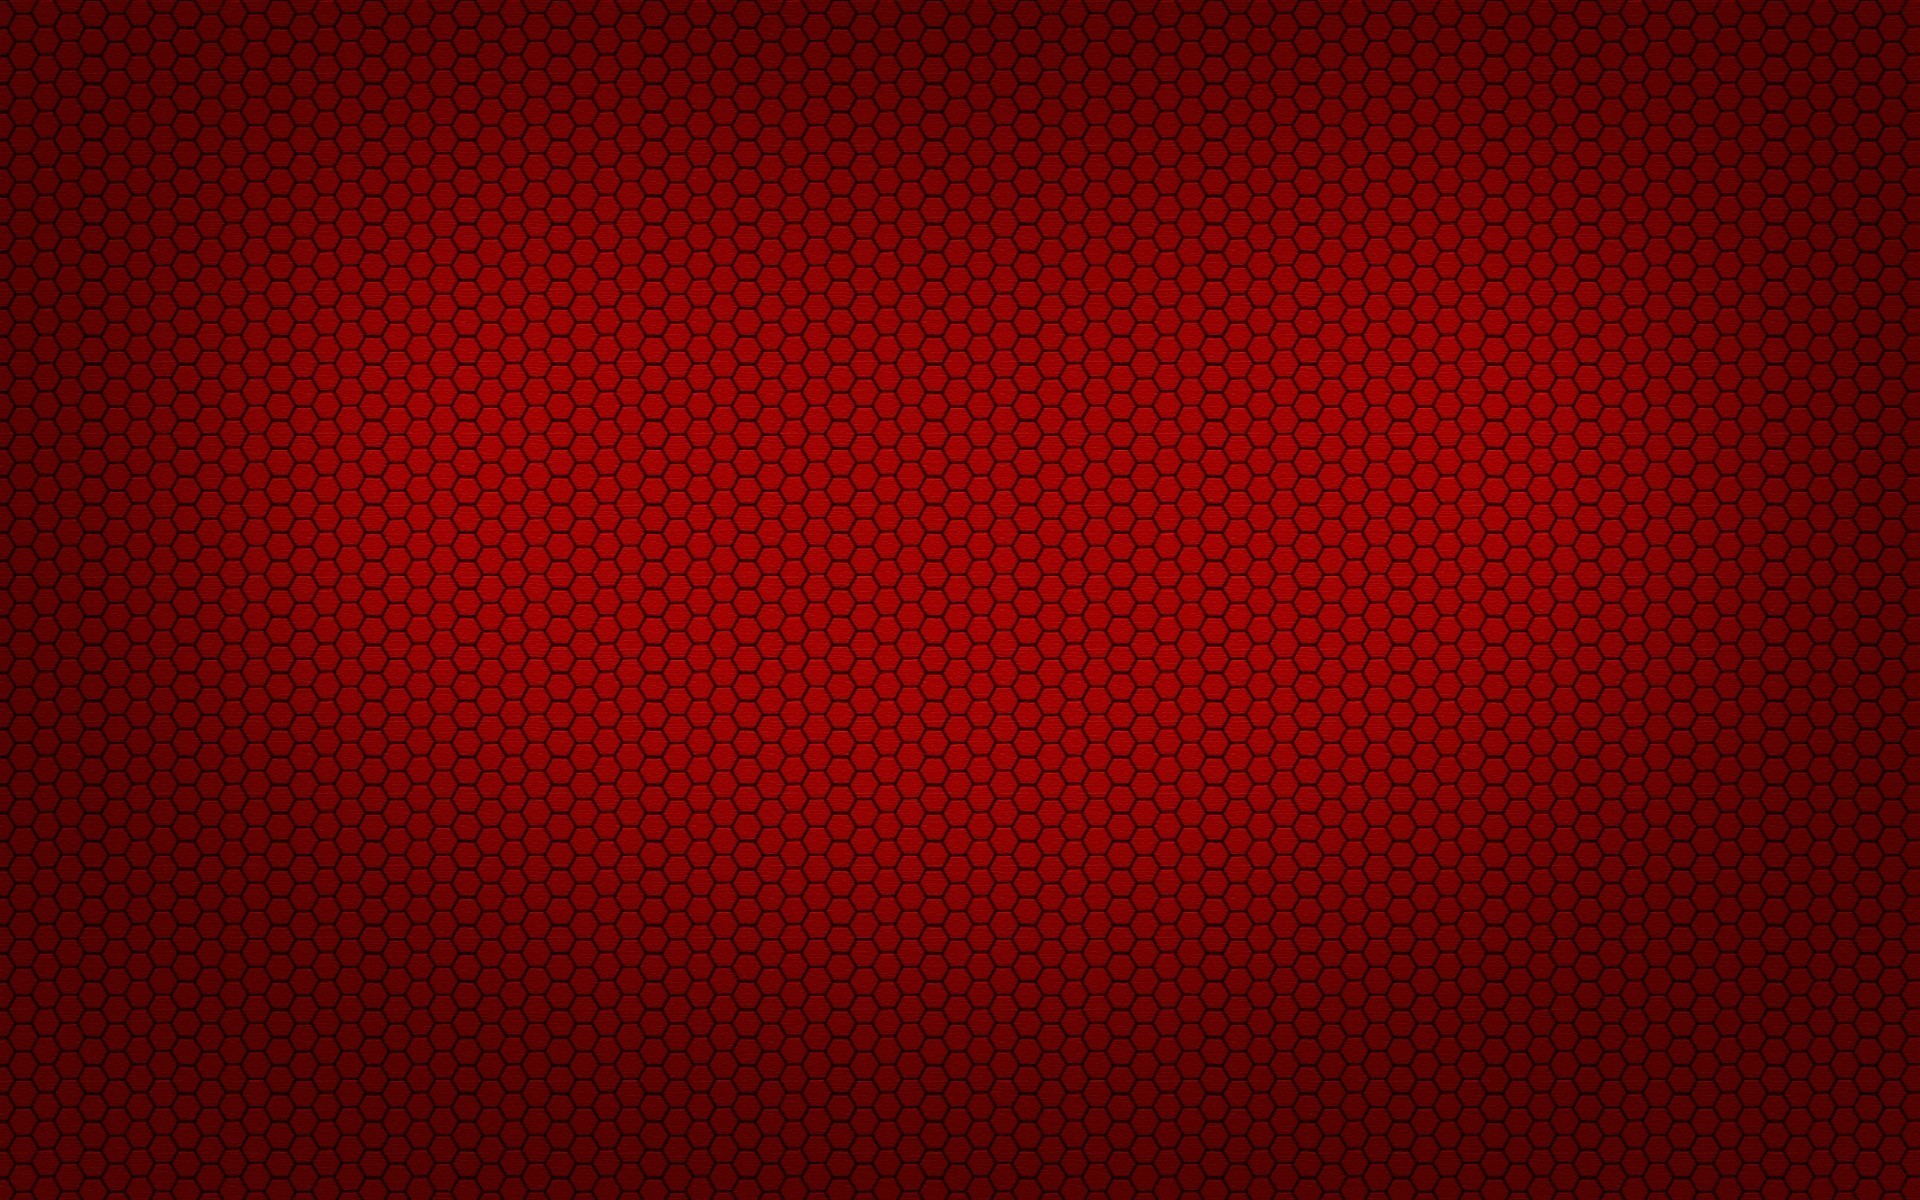 red_background_1080p